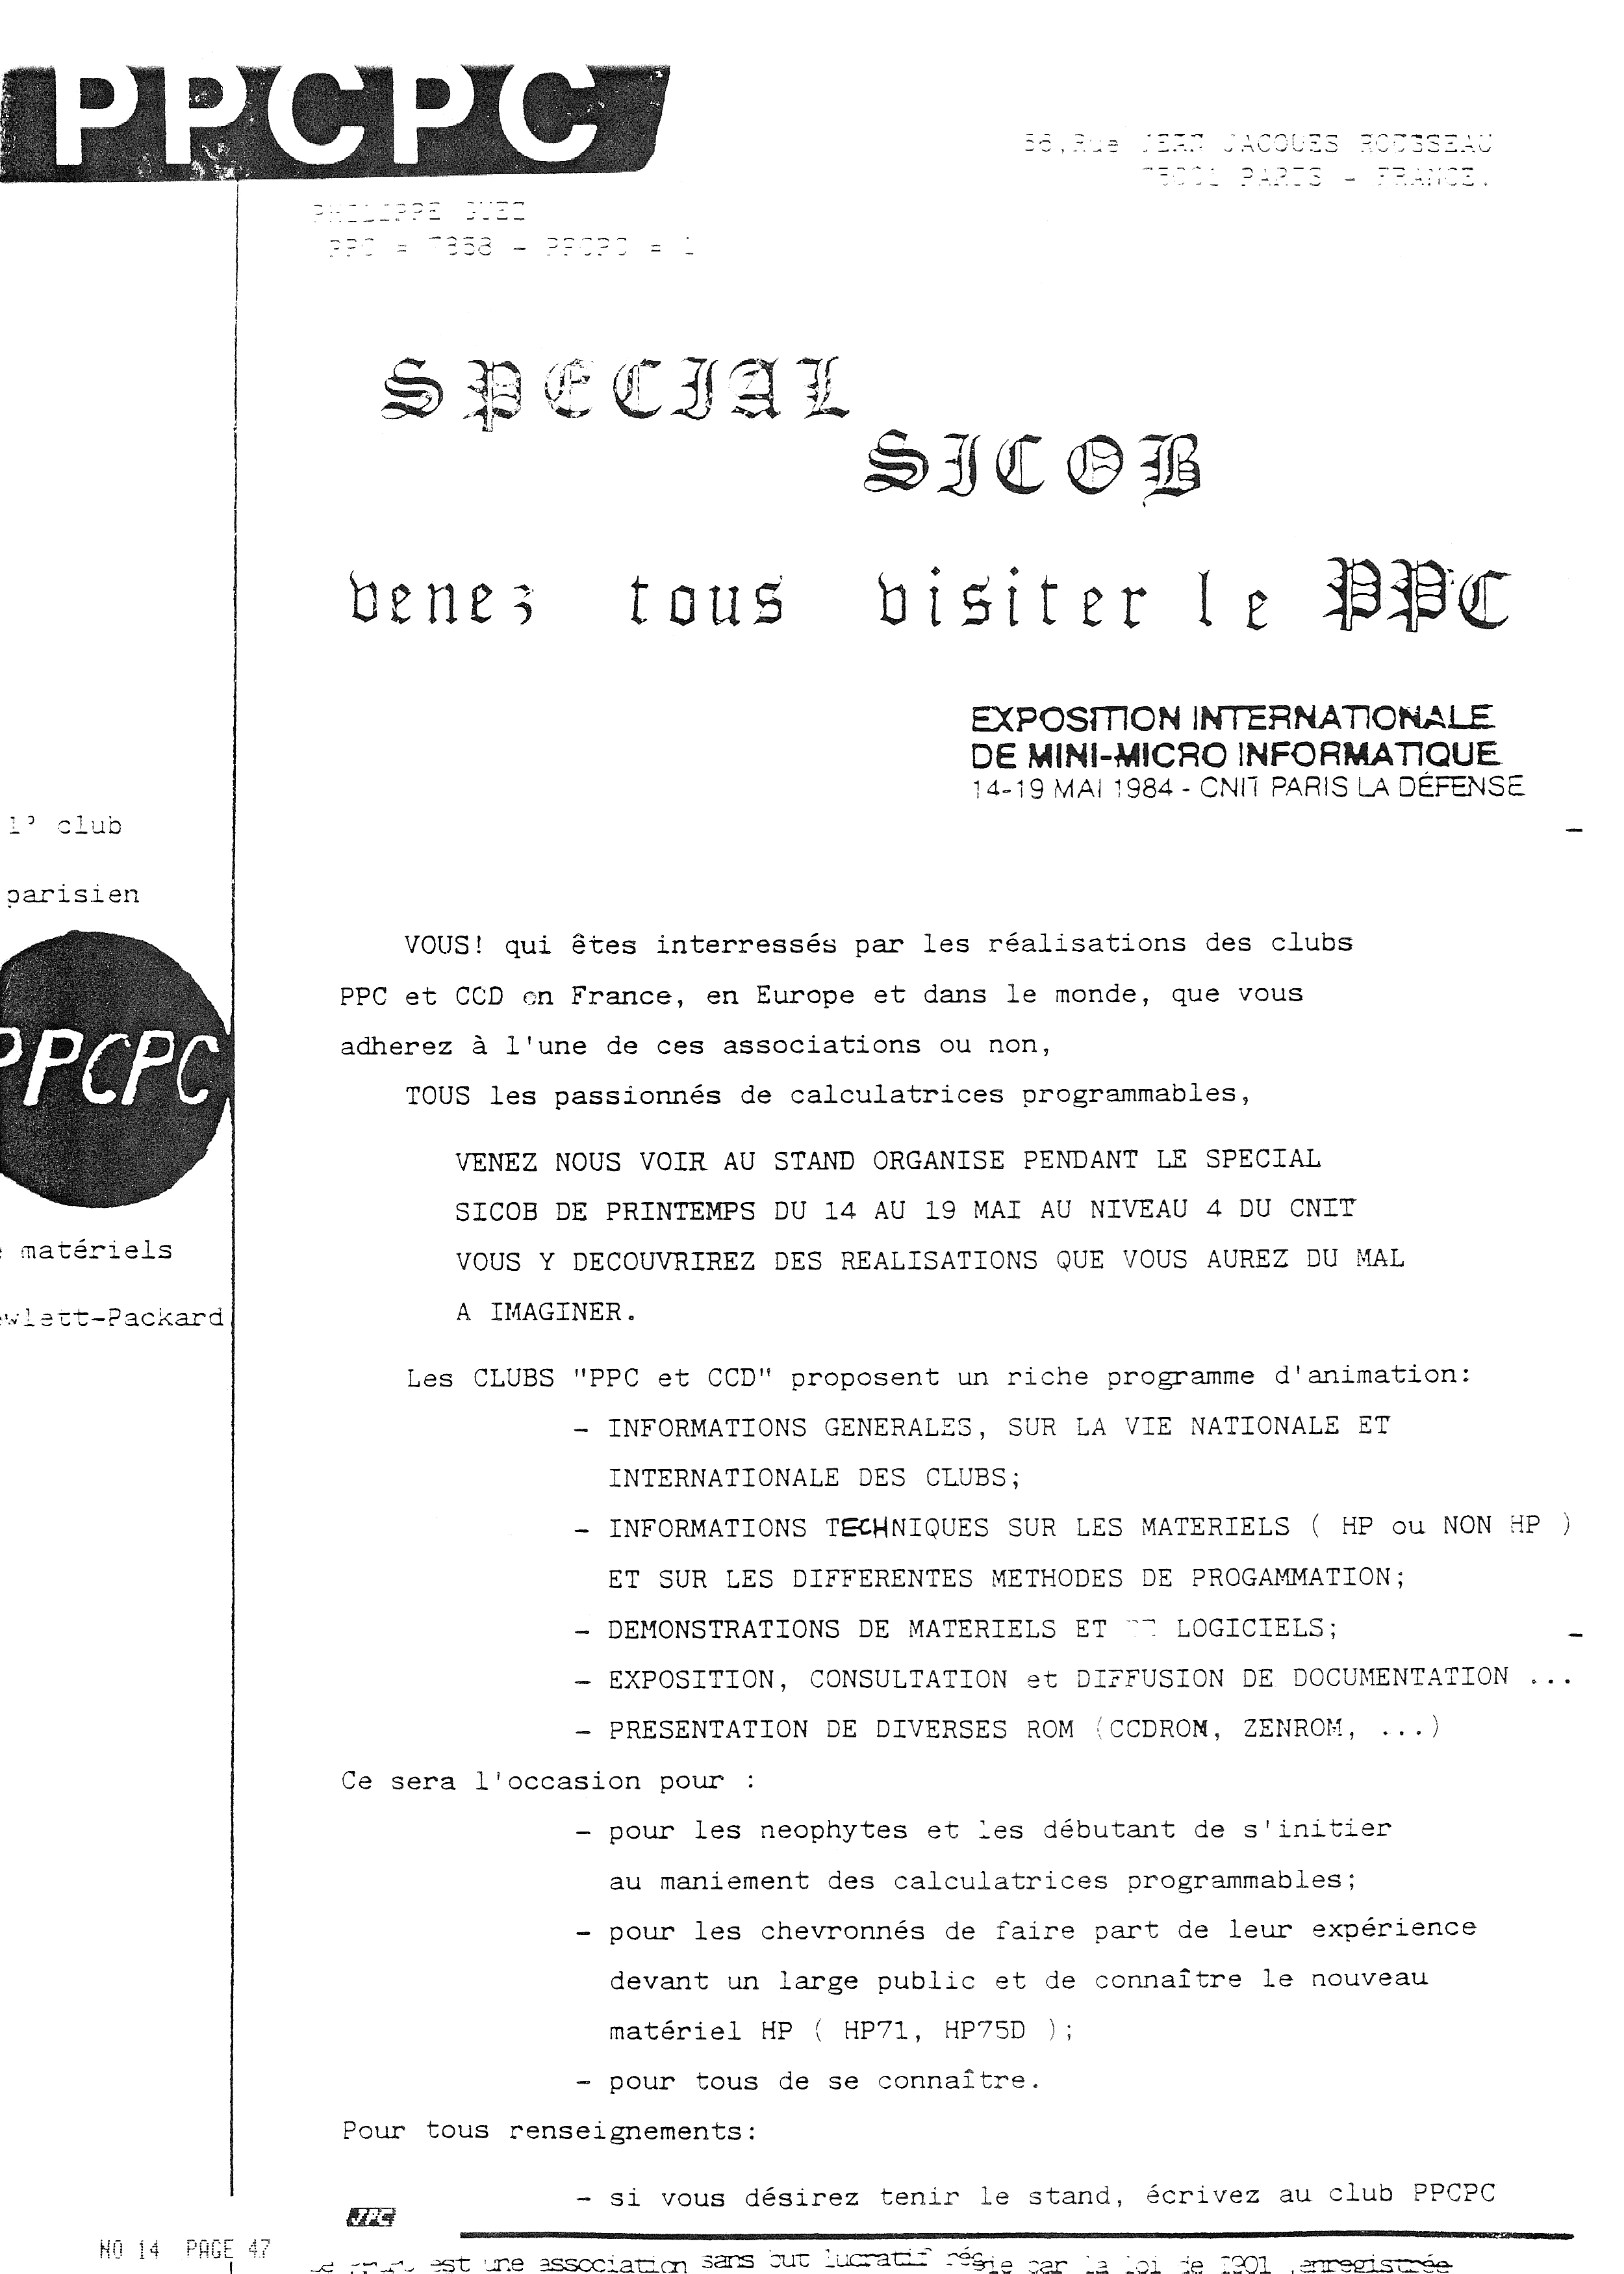 Jp-14-page-55-1000